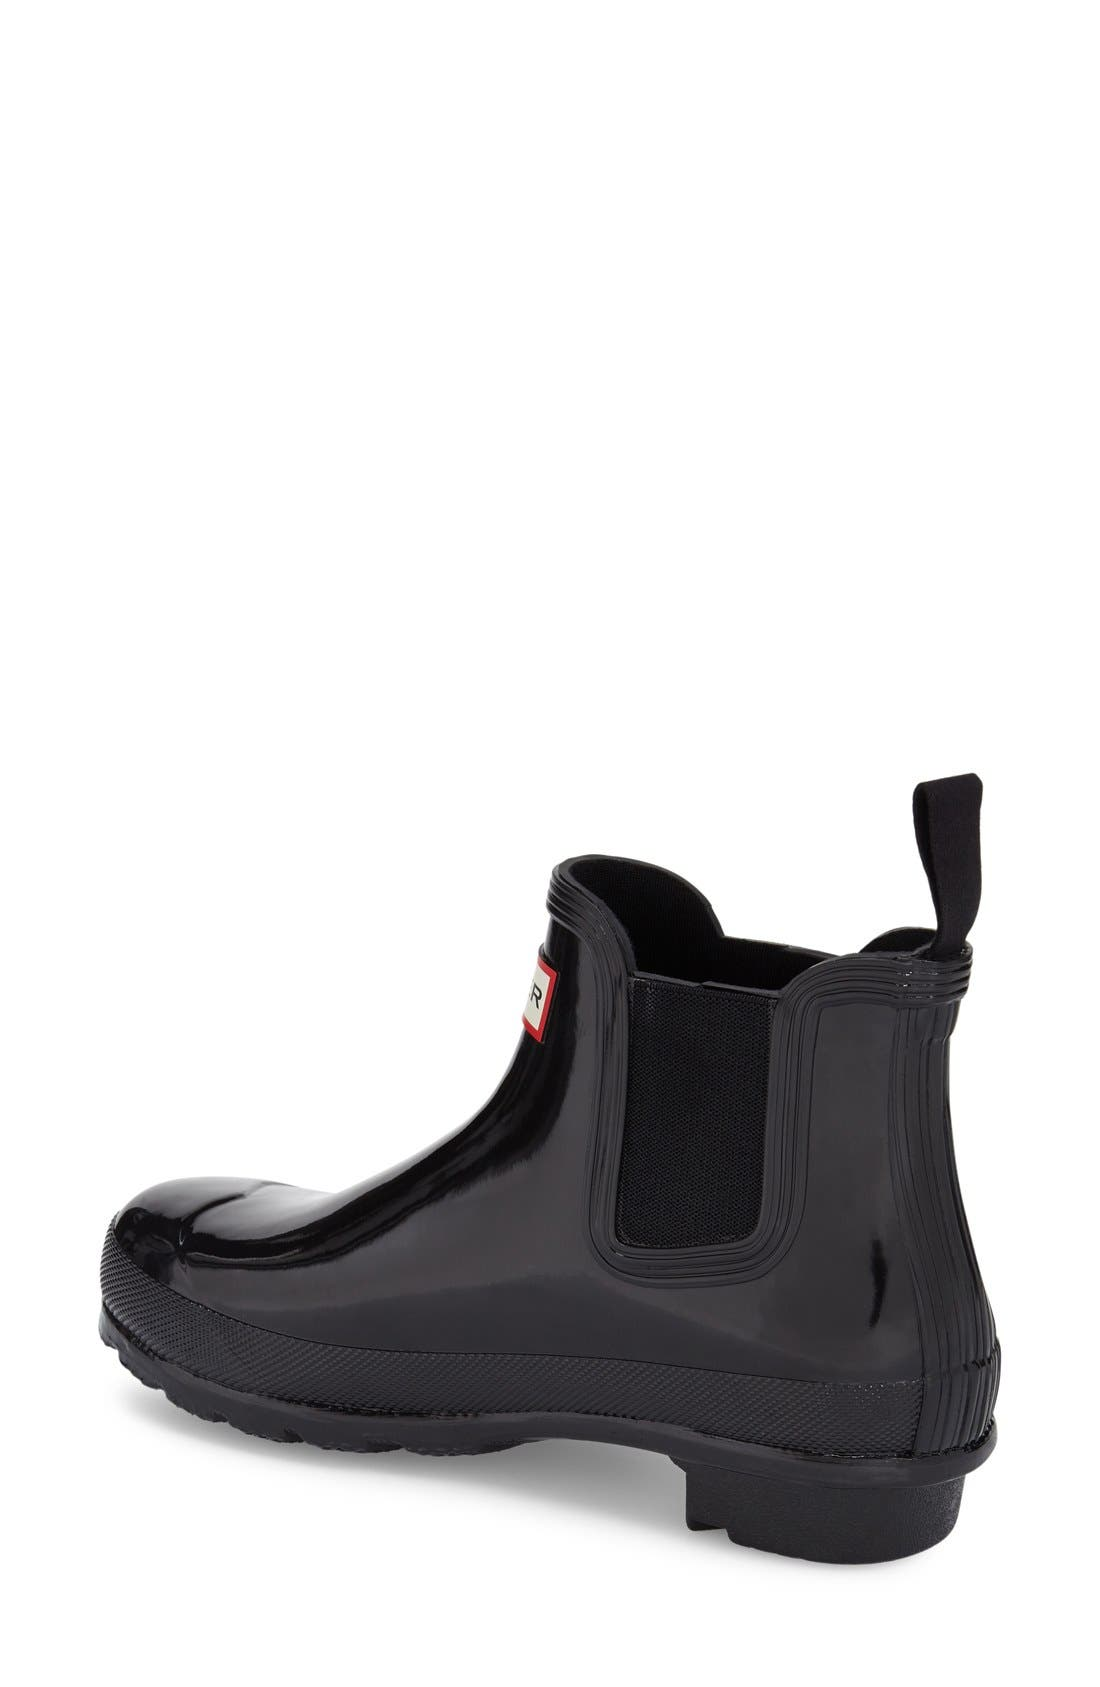 HUNTER,                             Original Gloss Waterproof Chelsea Boot,                             Alternate thumbnail 3, color,                             BLACK